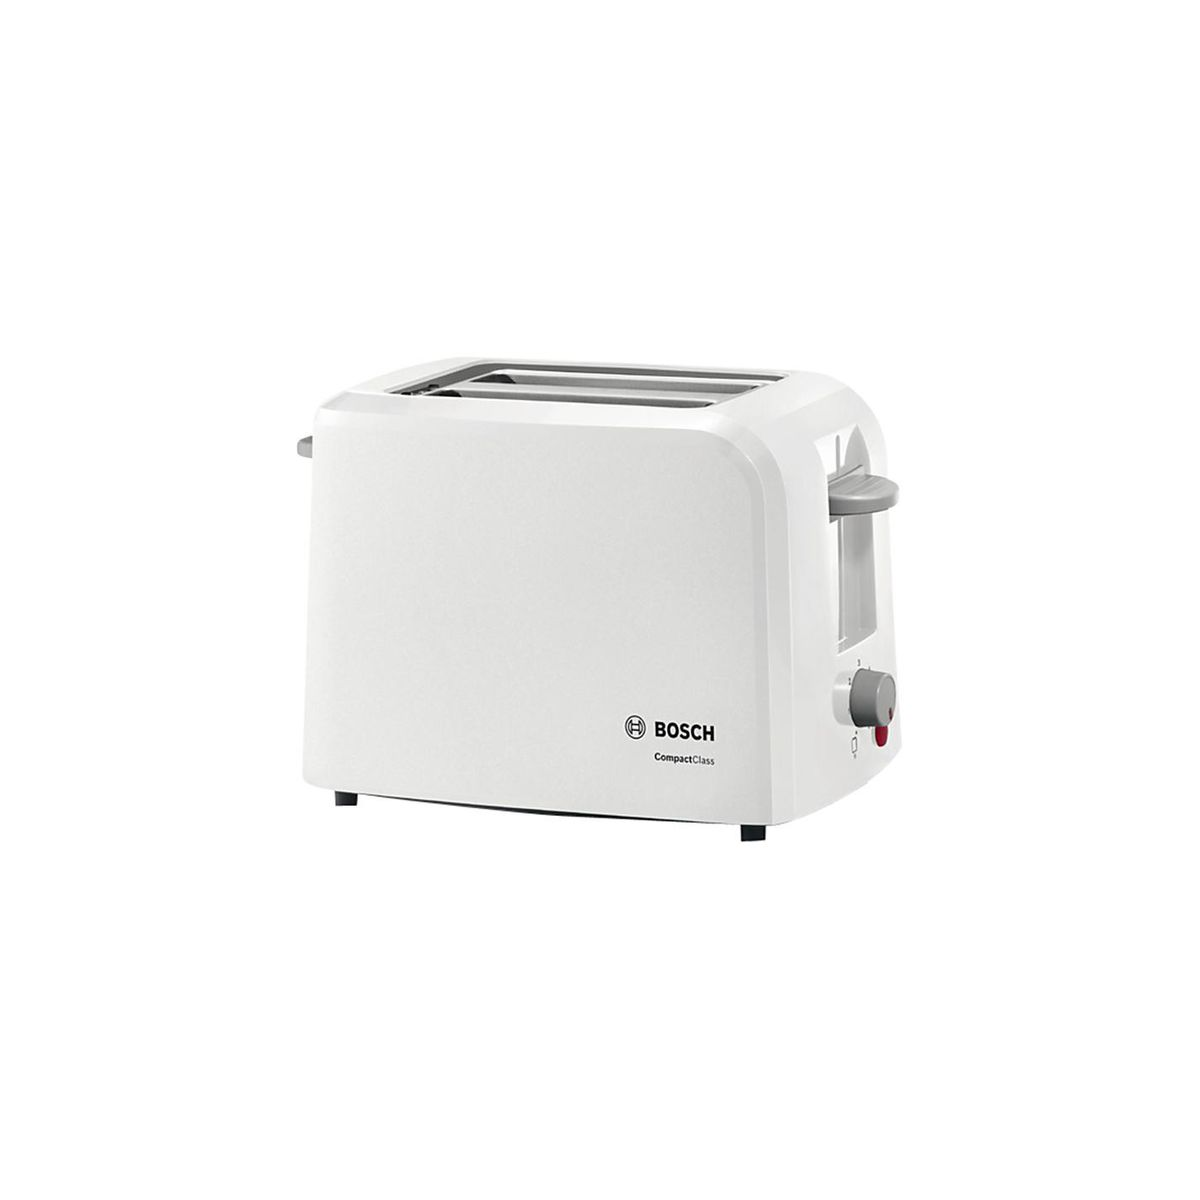 Bosch - 2 Slice Compact Class Toaster - White - TAT3A011 | Buy ...